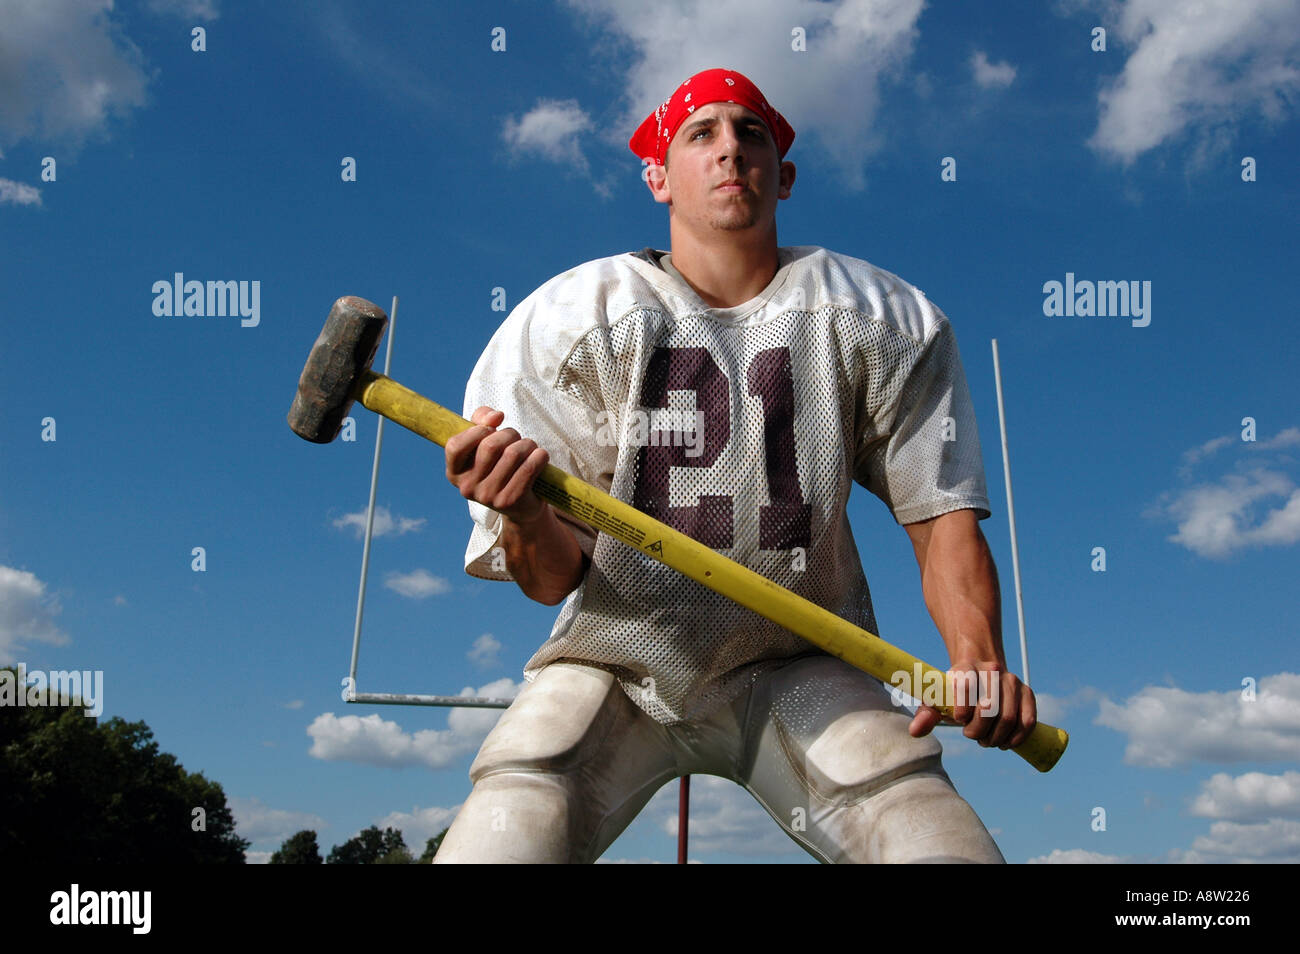 A tough football player holding a sledge hammer - Stock Image